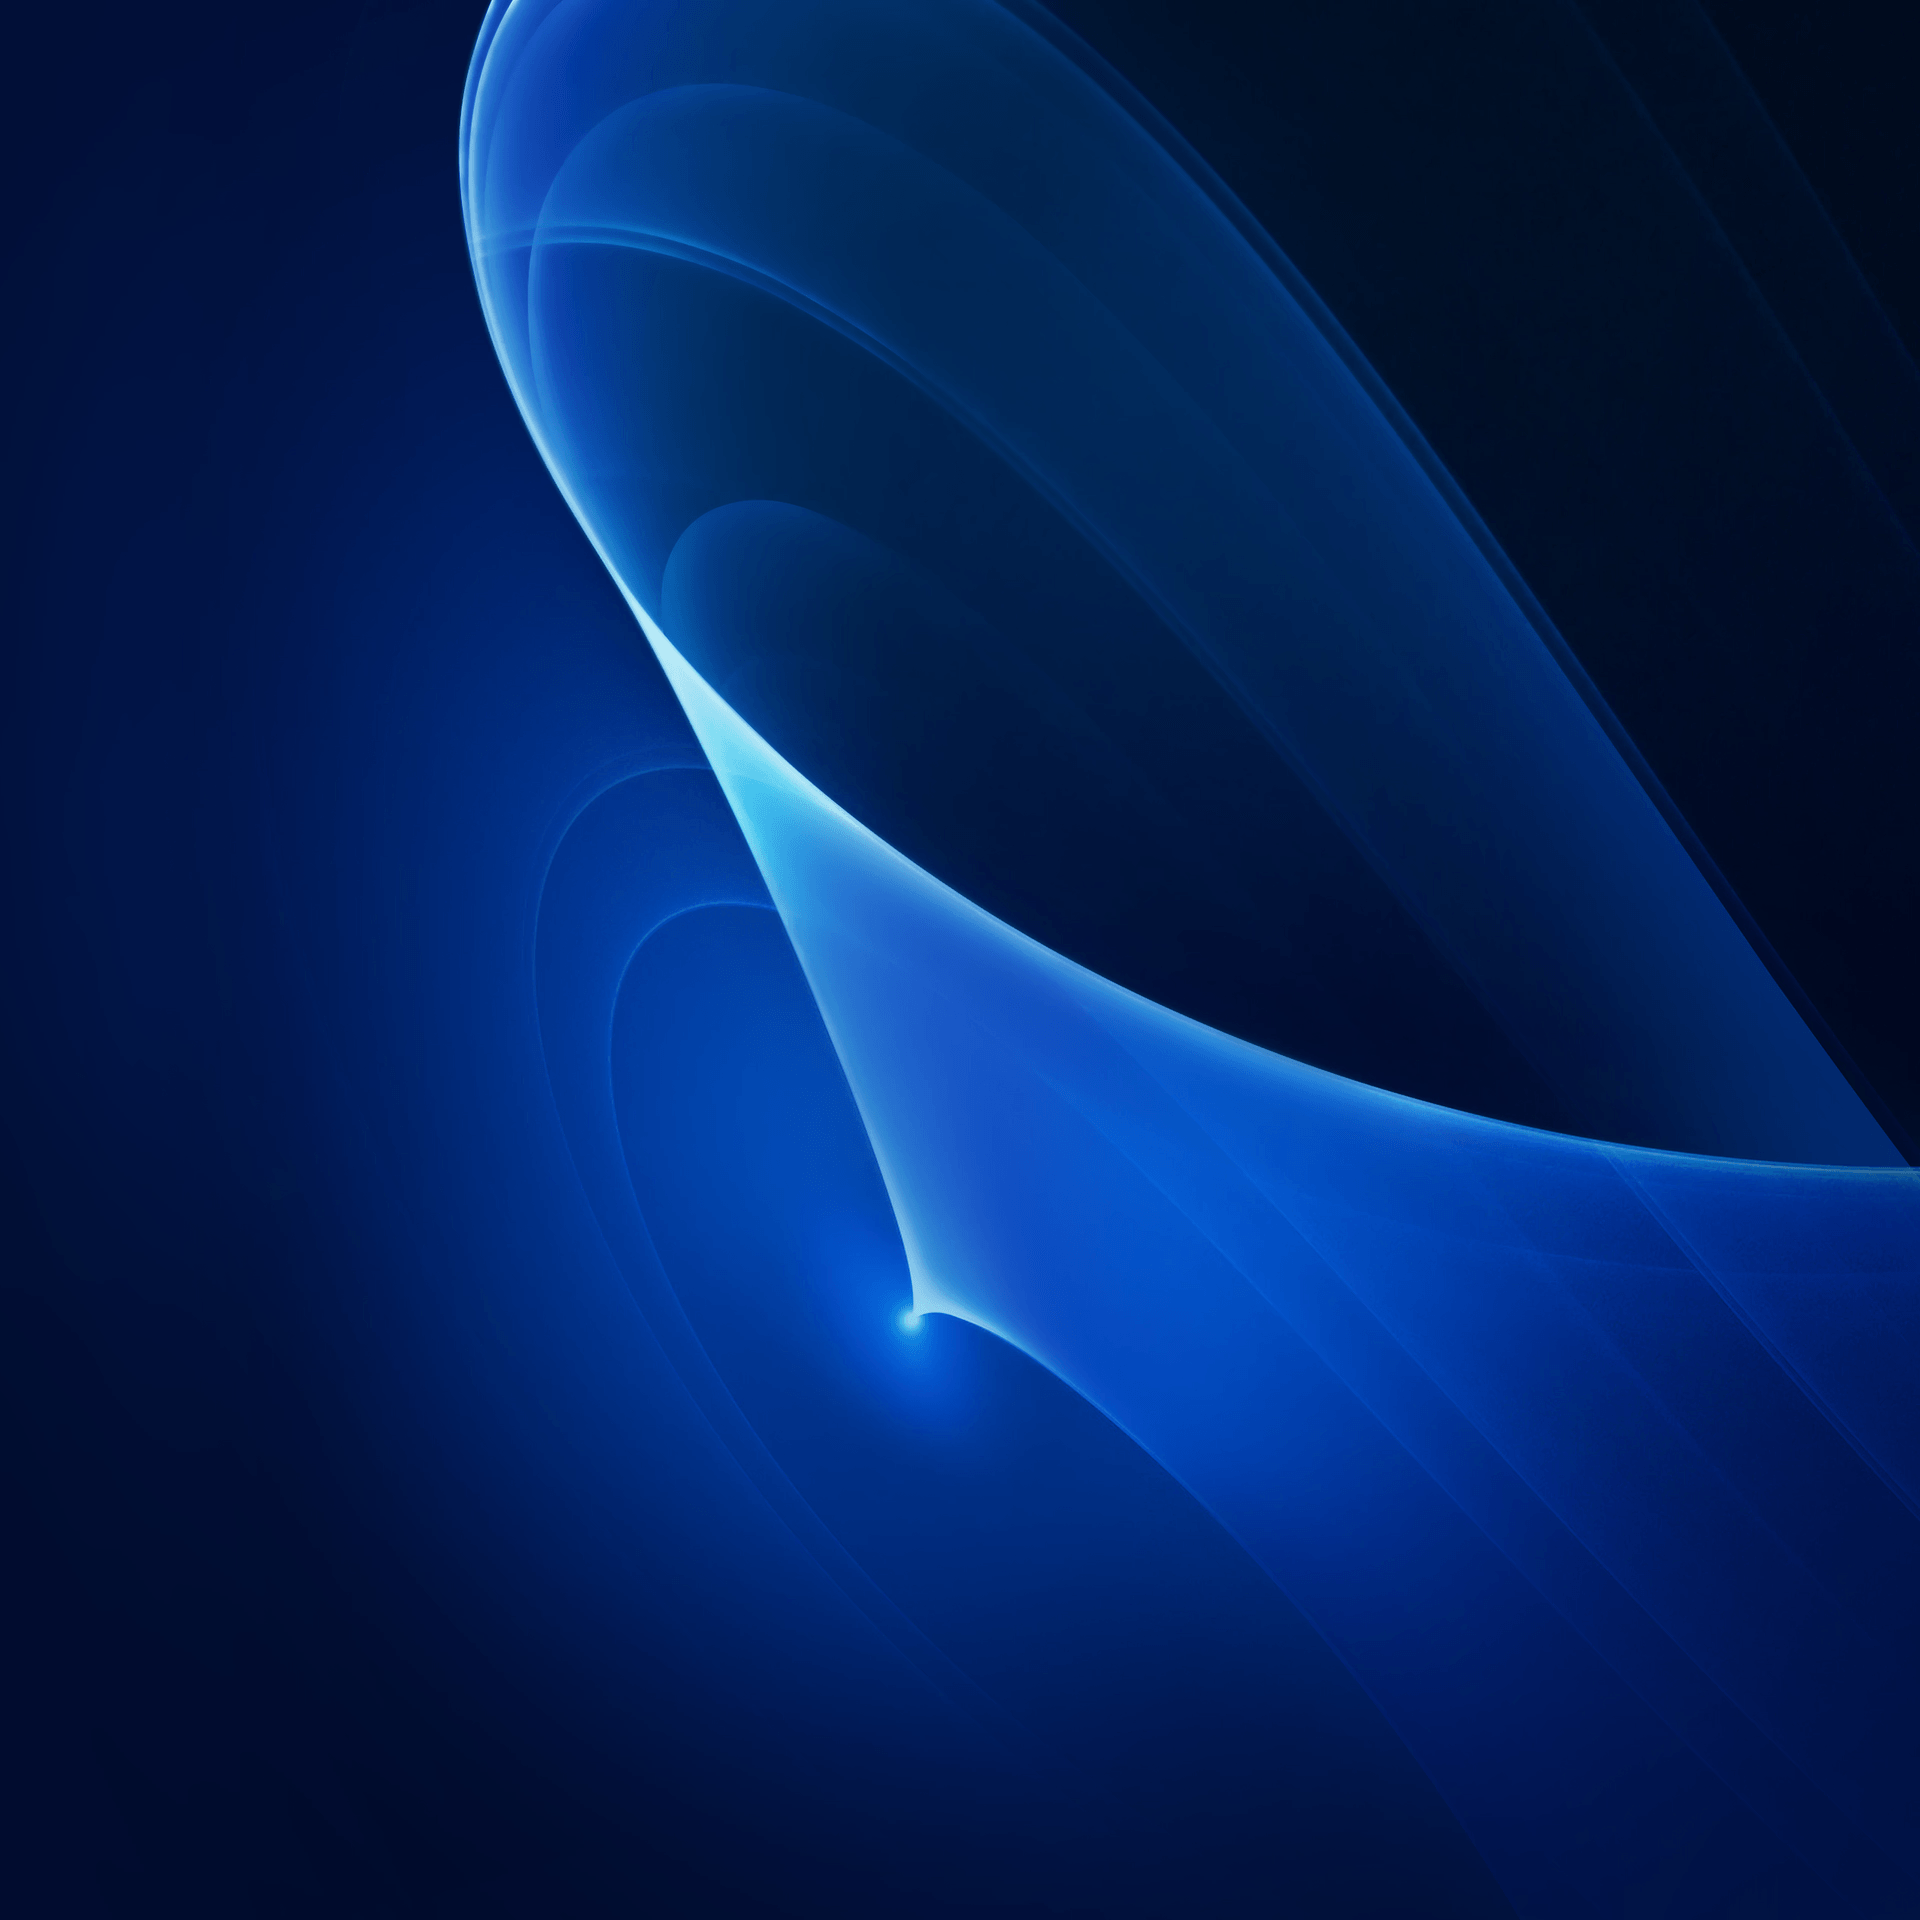 Samsung Galaxy J5 Prime Wallpapers Wallpaper Cave